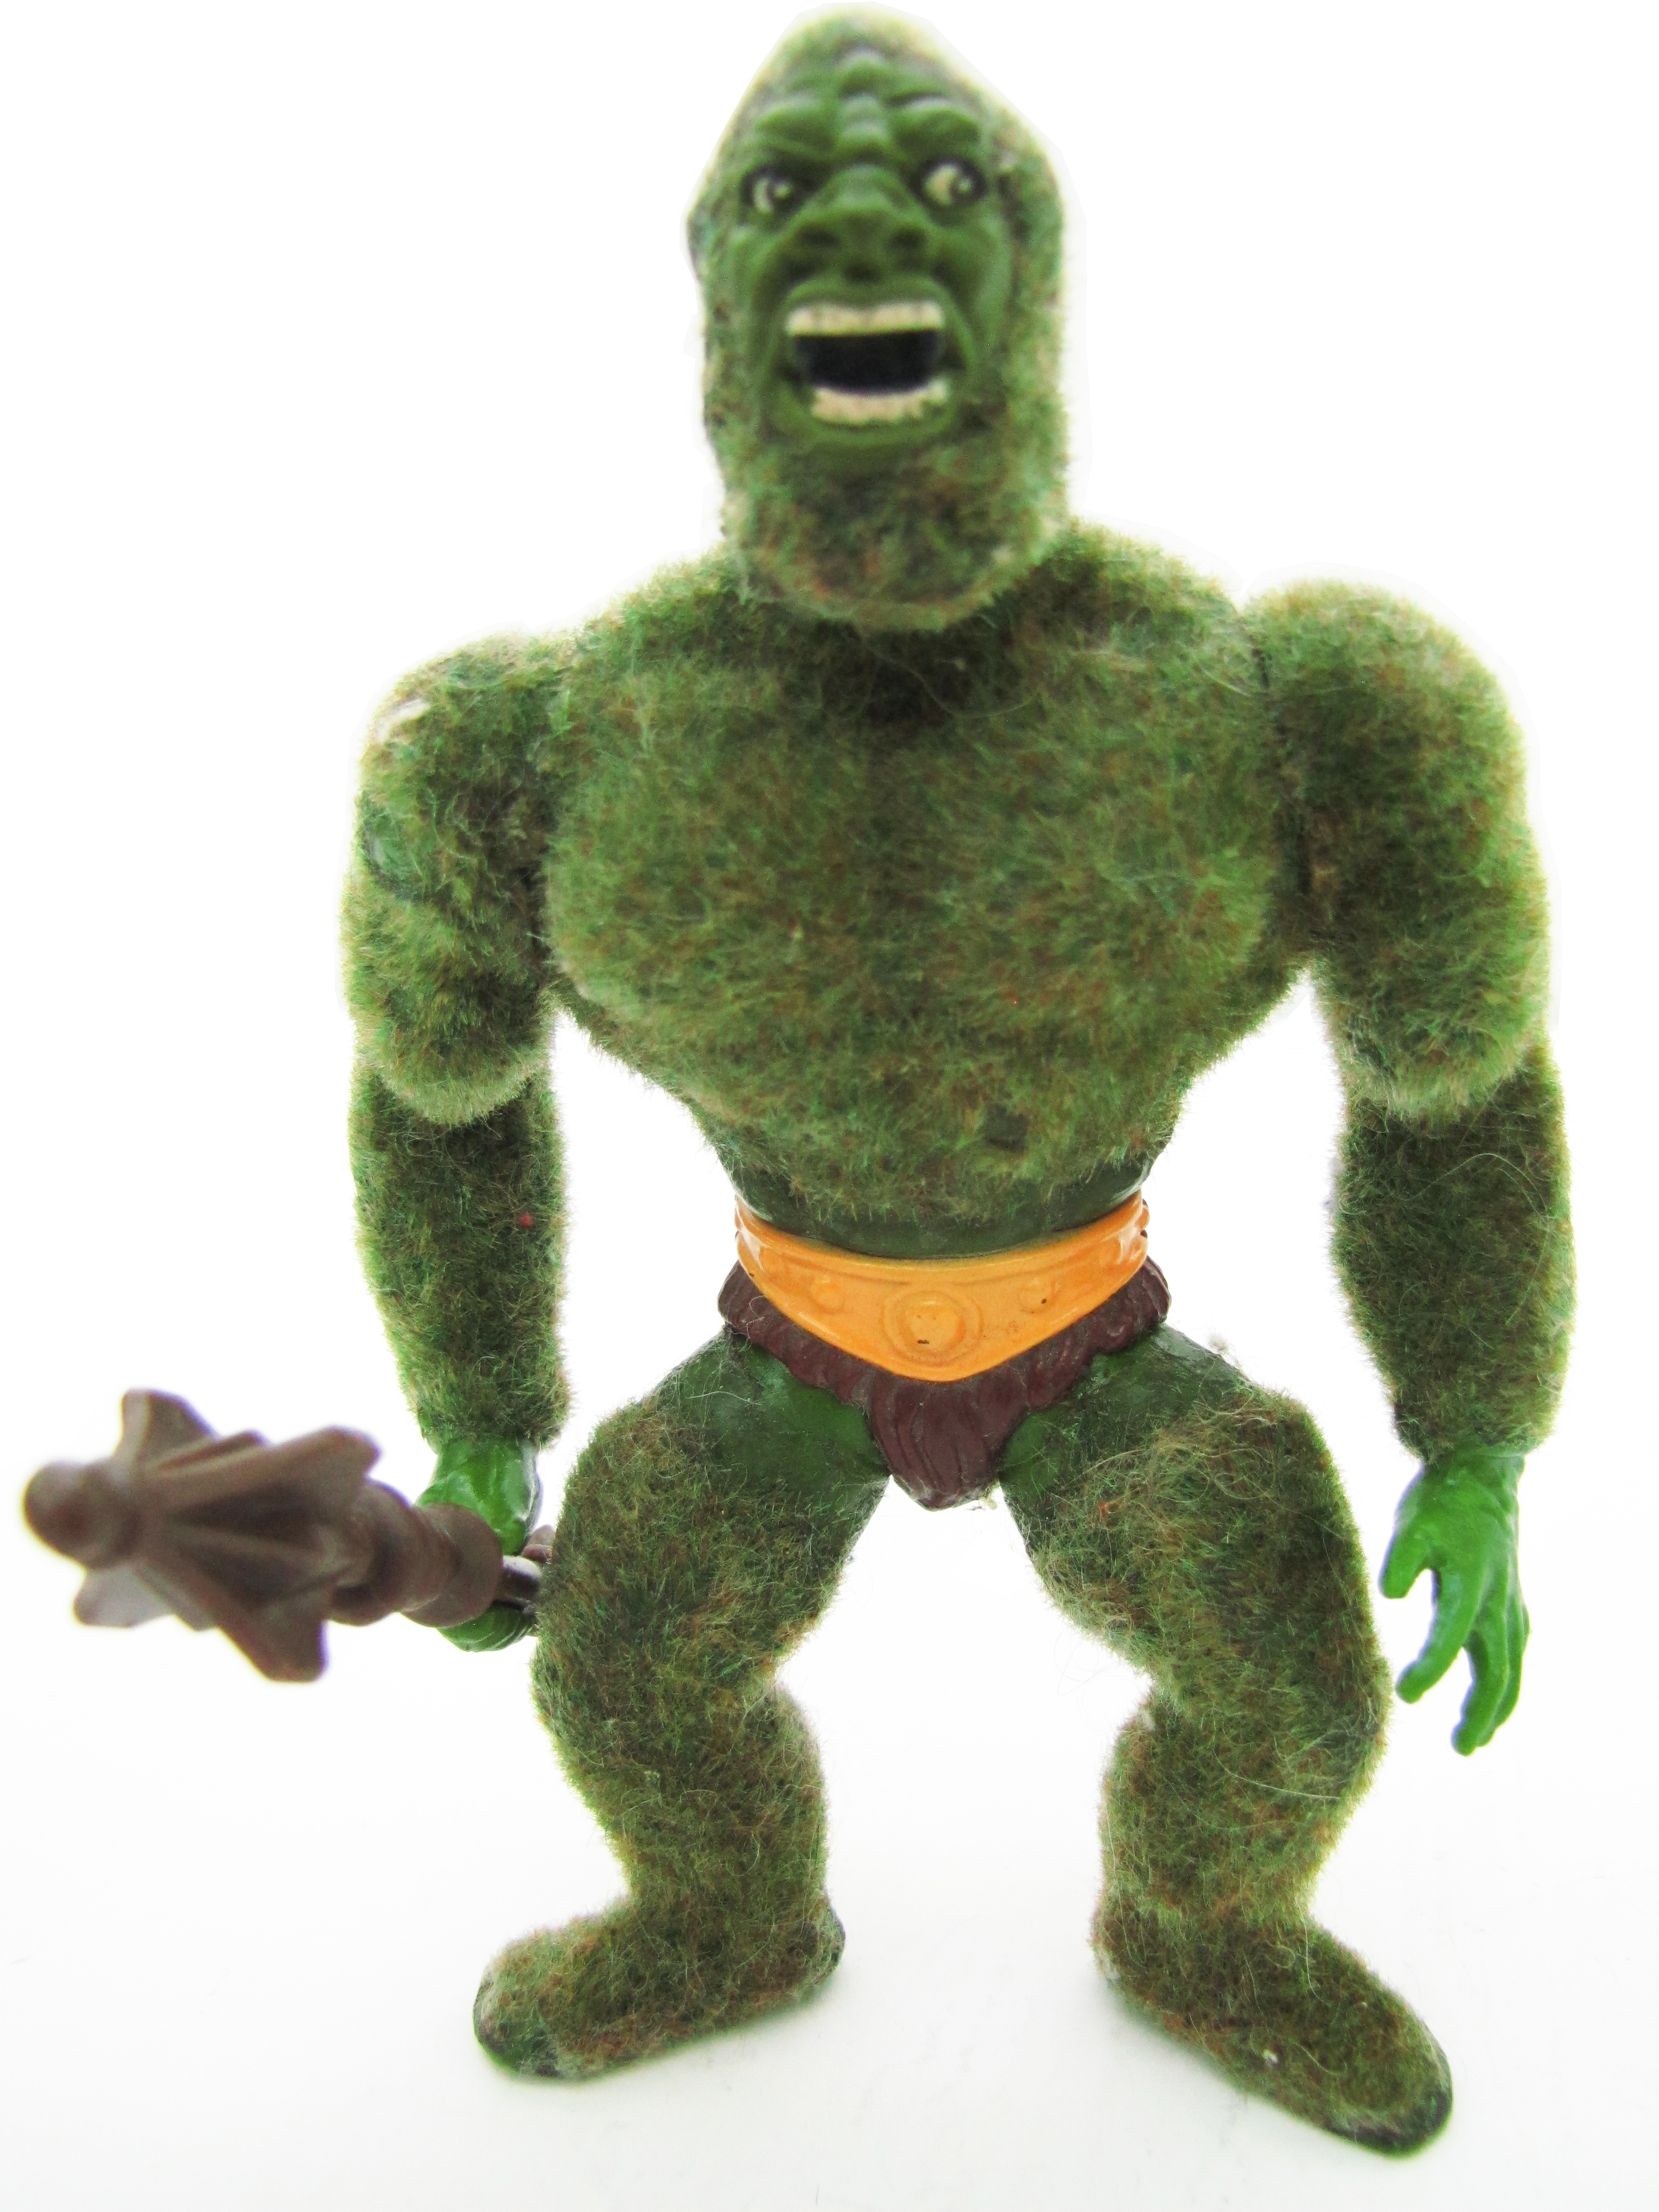 1985 MOTU Masters of the Universe MOSS MAN HEROIC SPY & MASTER OF CAMOUFLAGE